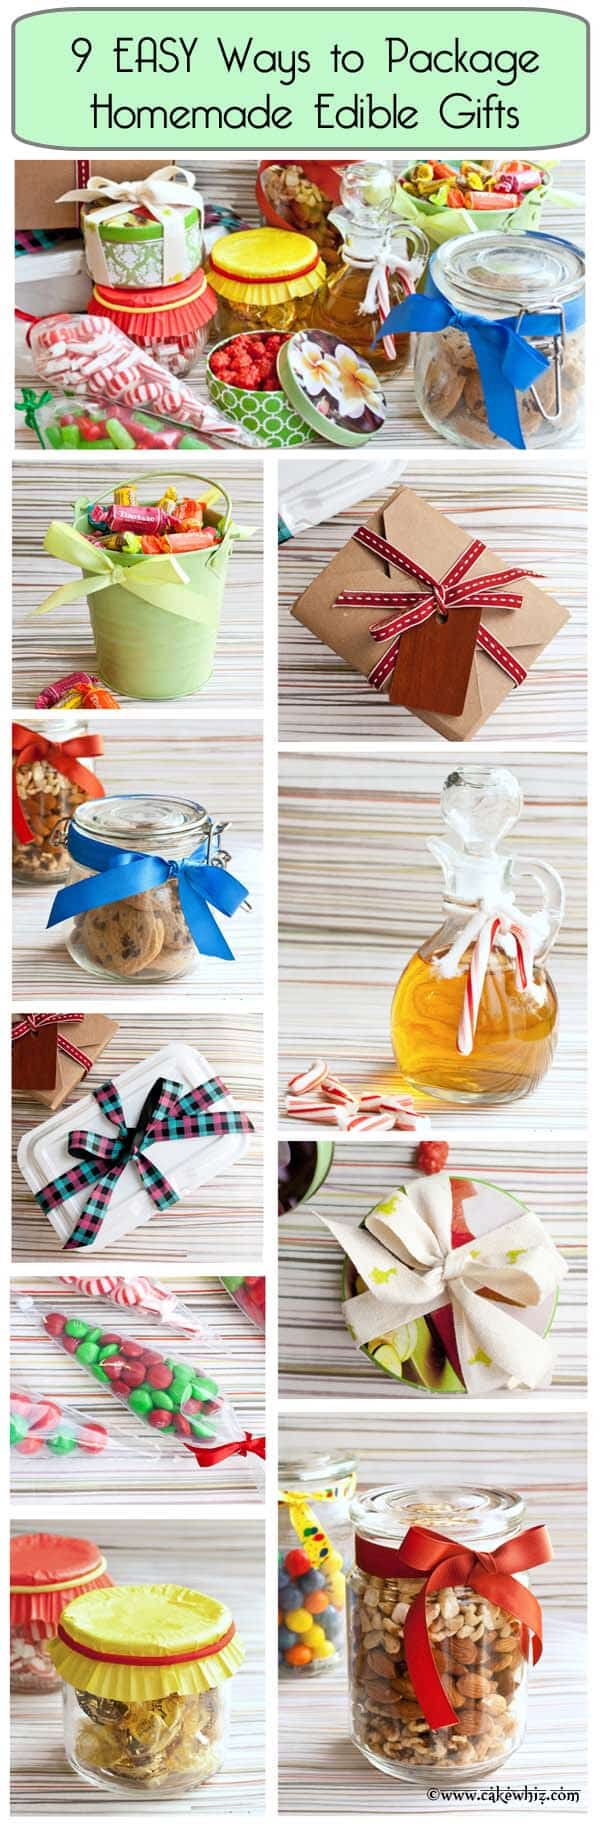 9 easy ways to package edible gifts